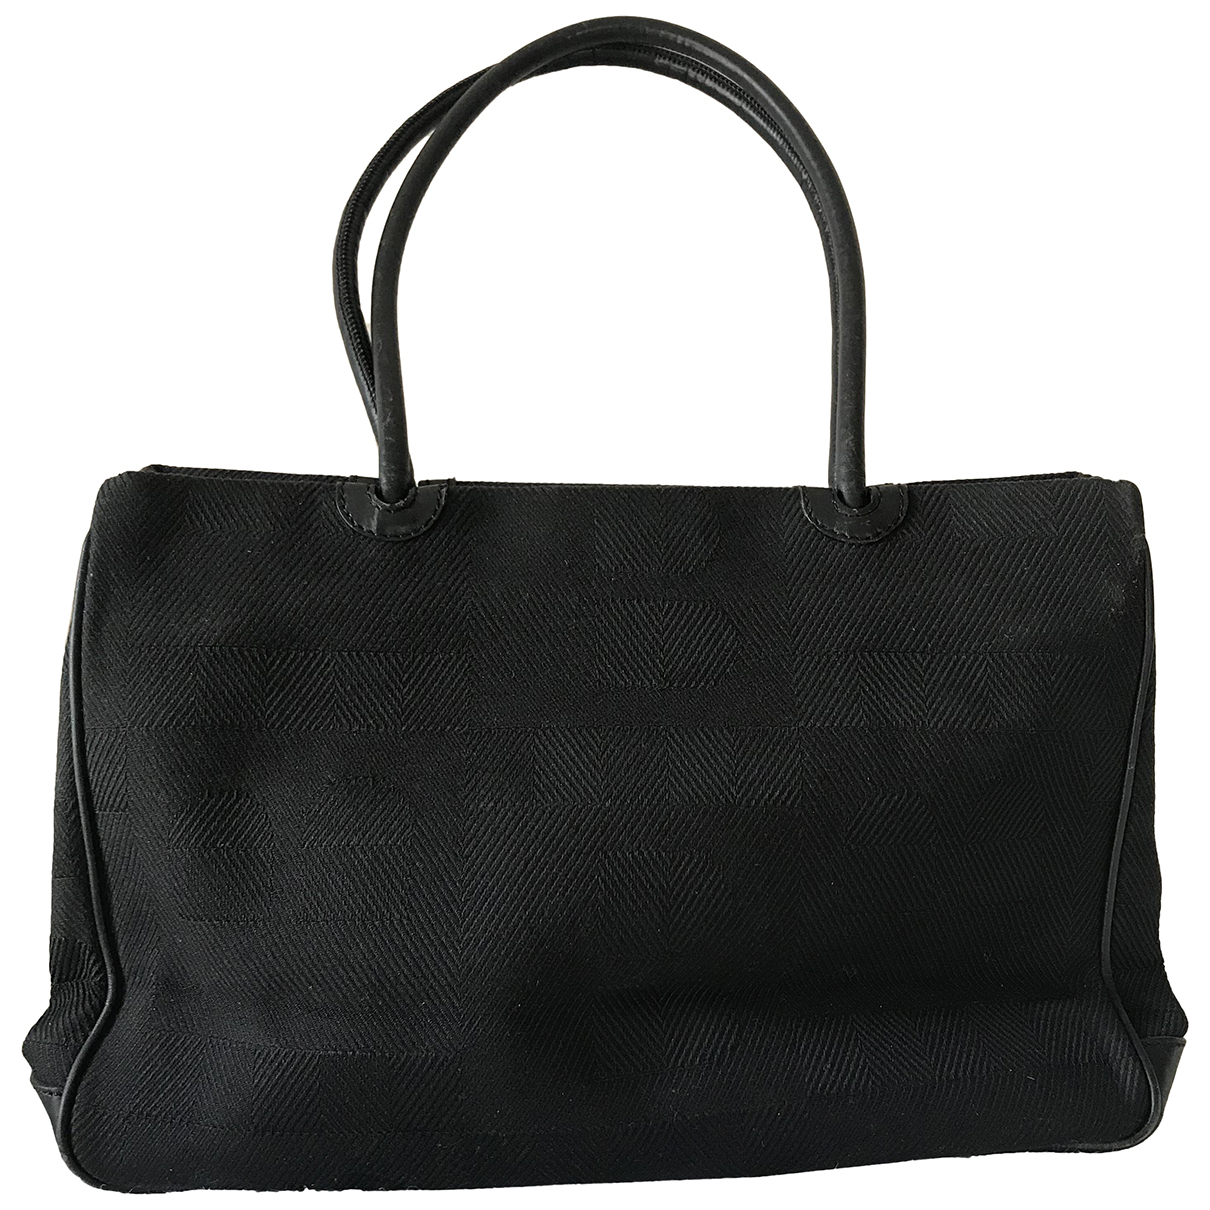 Bally \N Black Cloth handbag for Women \N